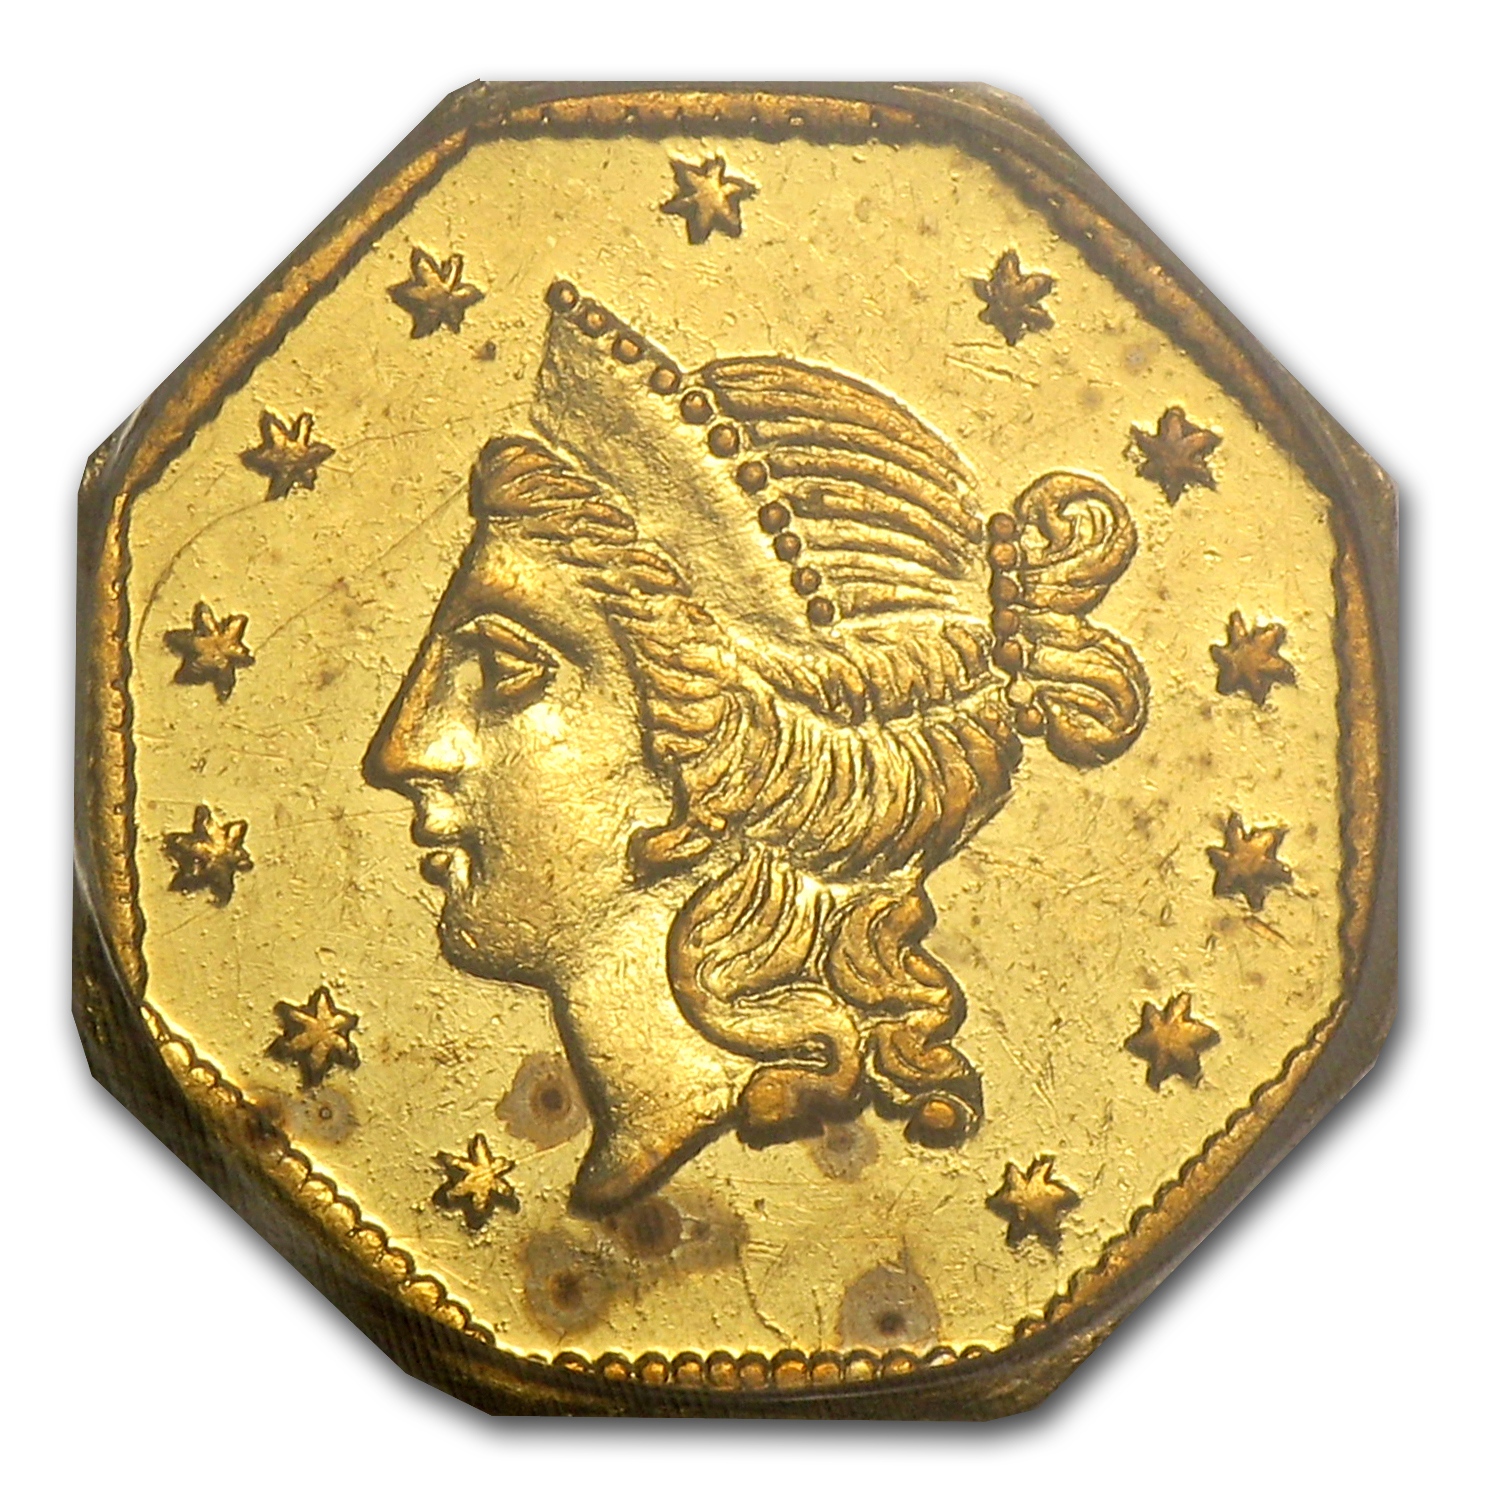 1855 BG-533 Liberty Octagonal One Dollar Gold MS-60 PCGS